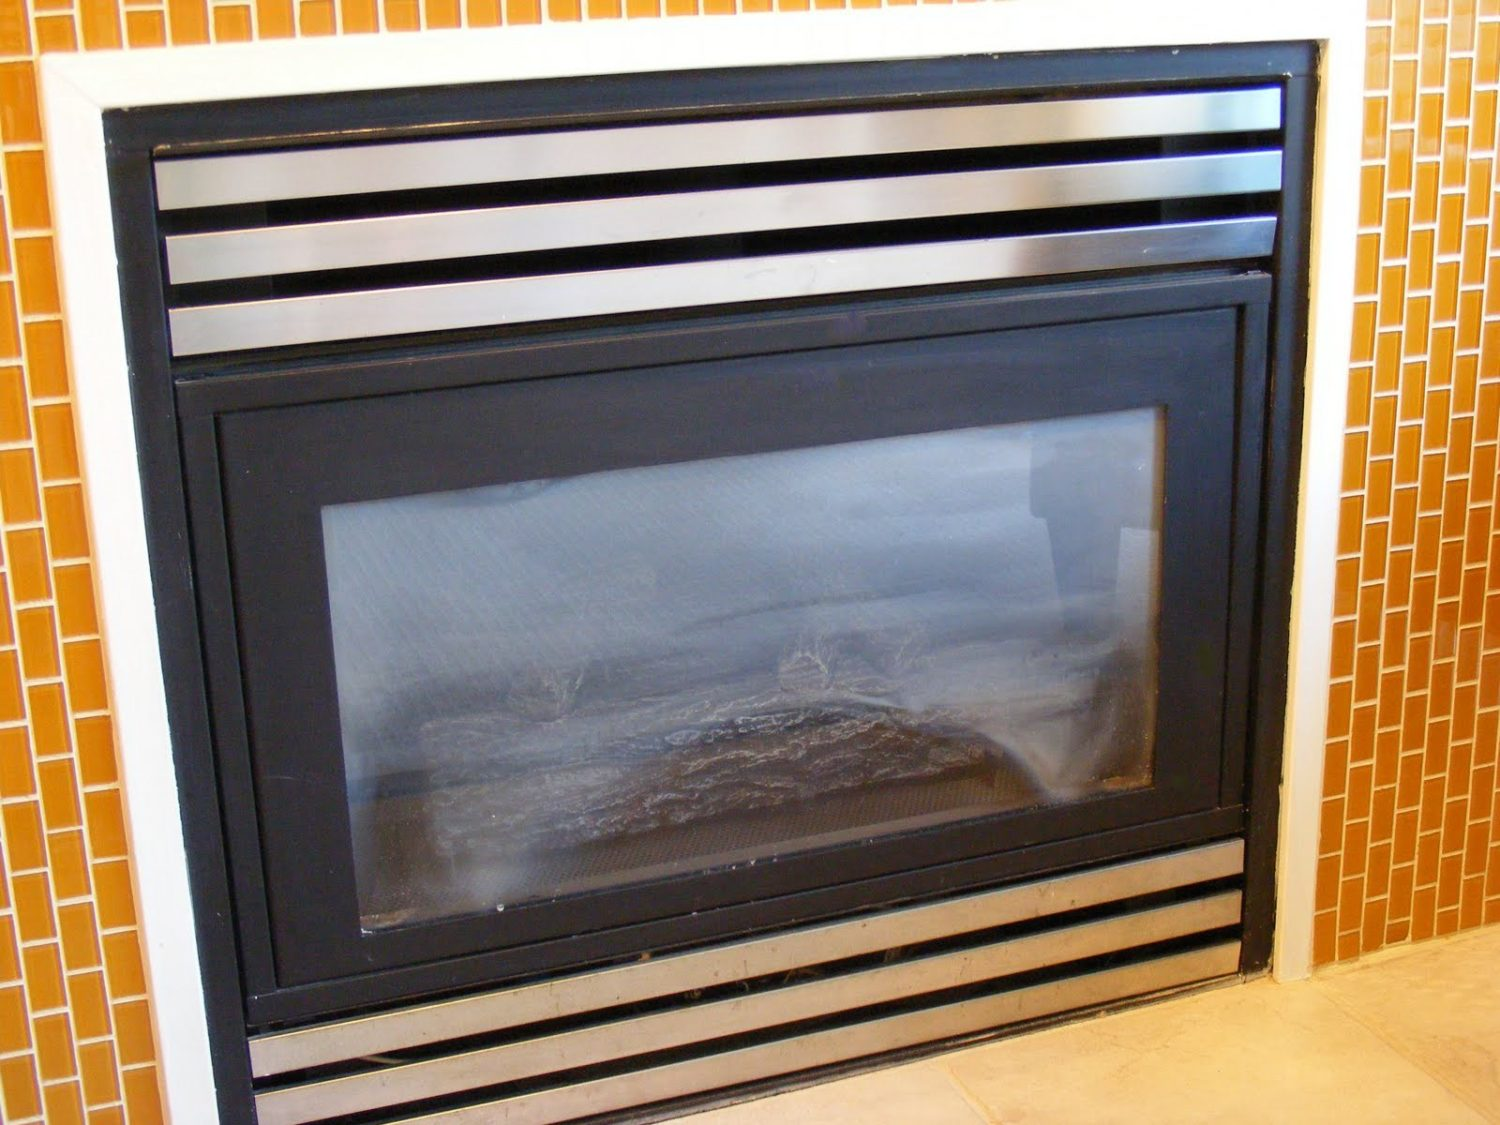 gas fireplace repair dirty glass my gas fireplace repair. Black Bedroom Furniture Sets. Home Design Ideas